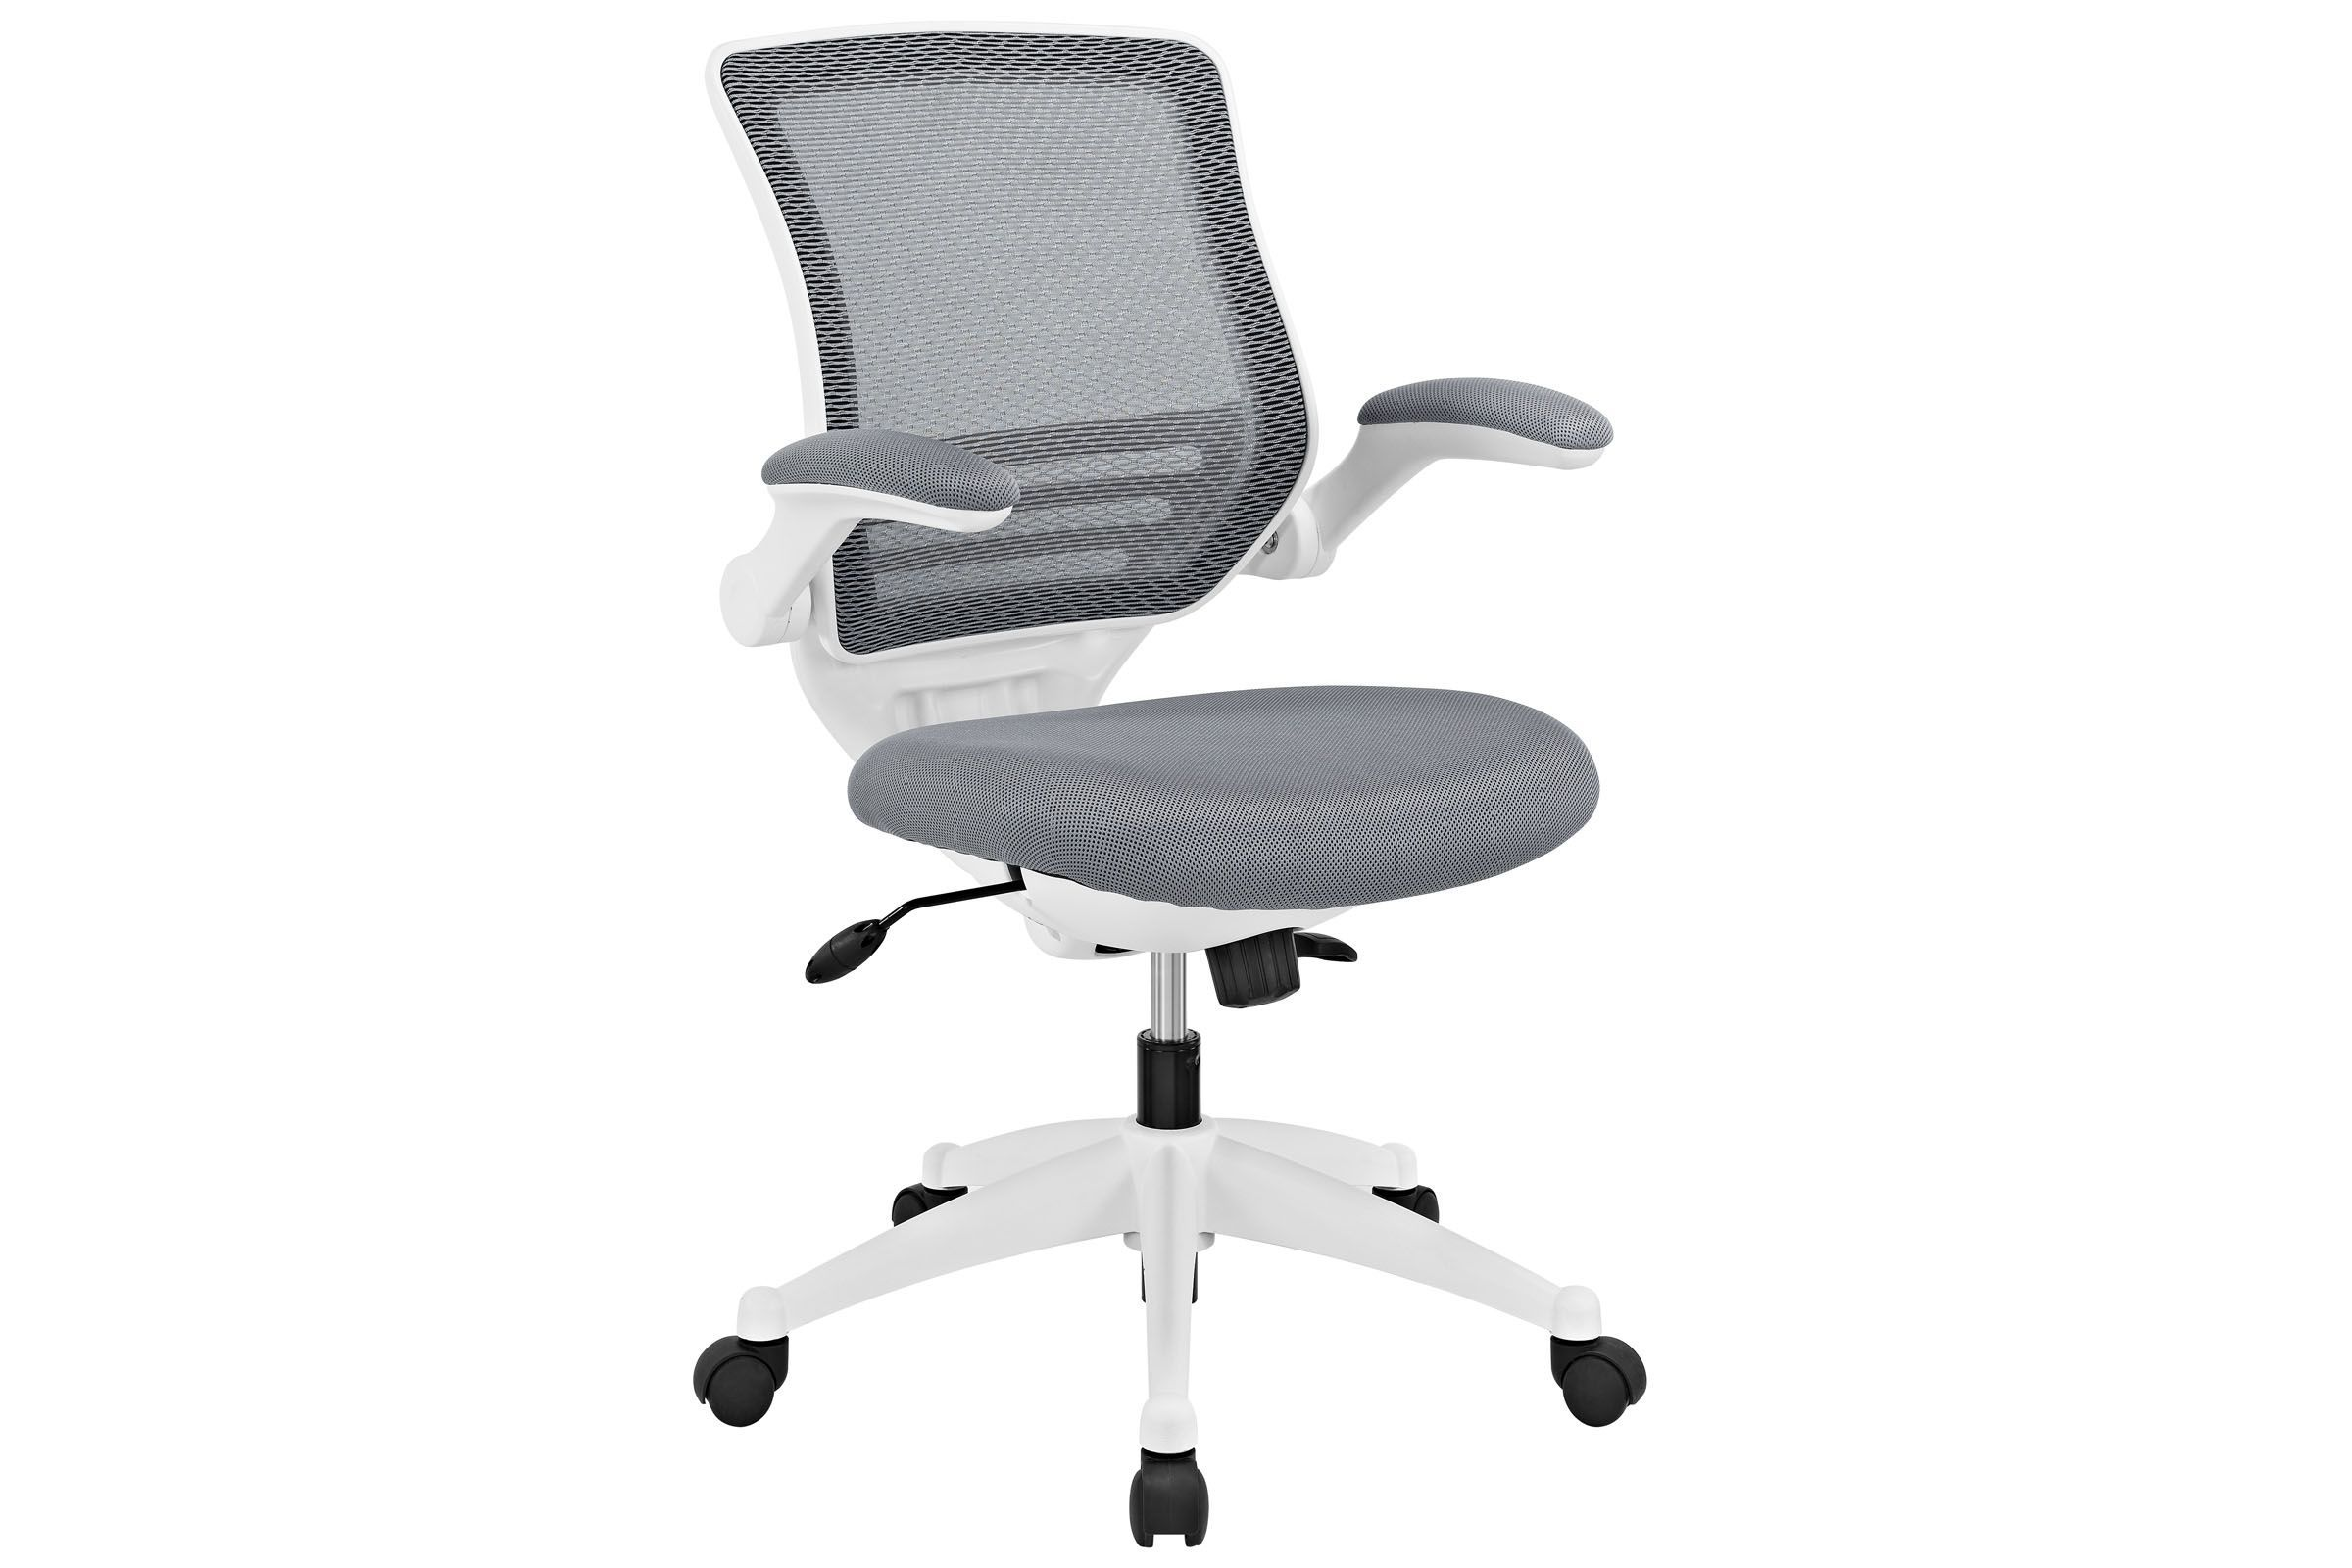 Edge White Base Office Chair In Grey By